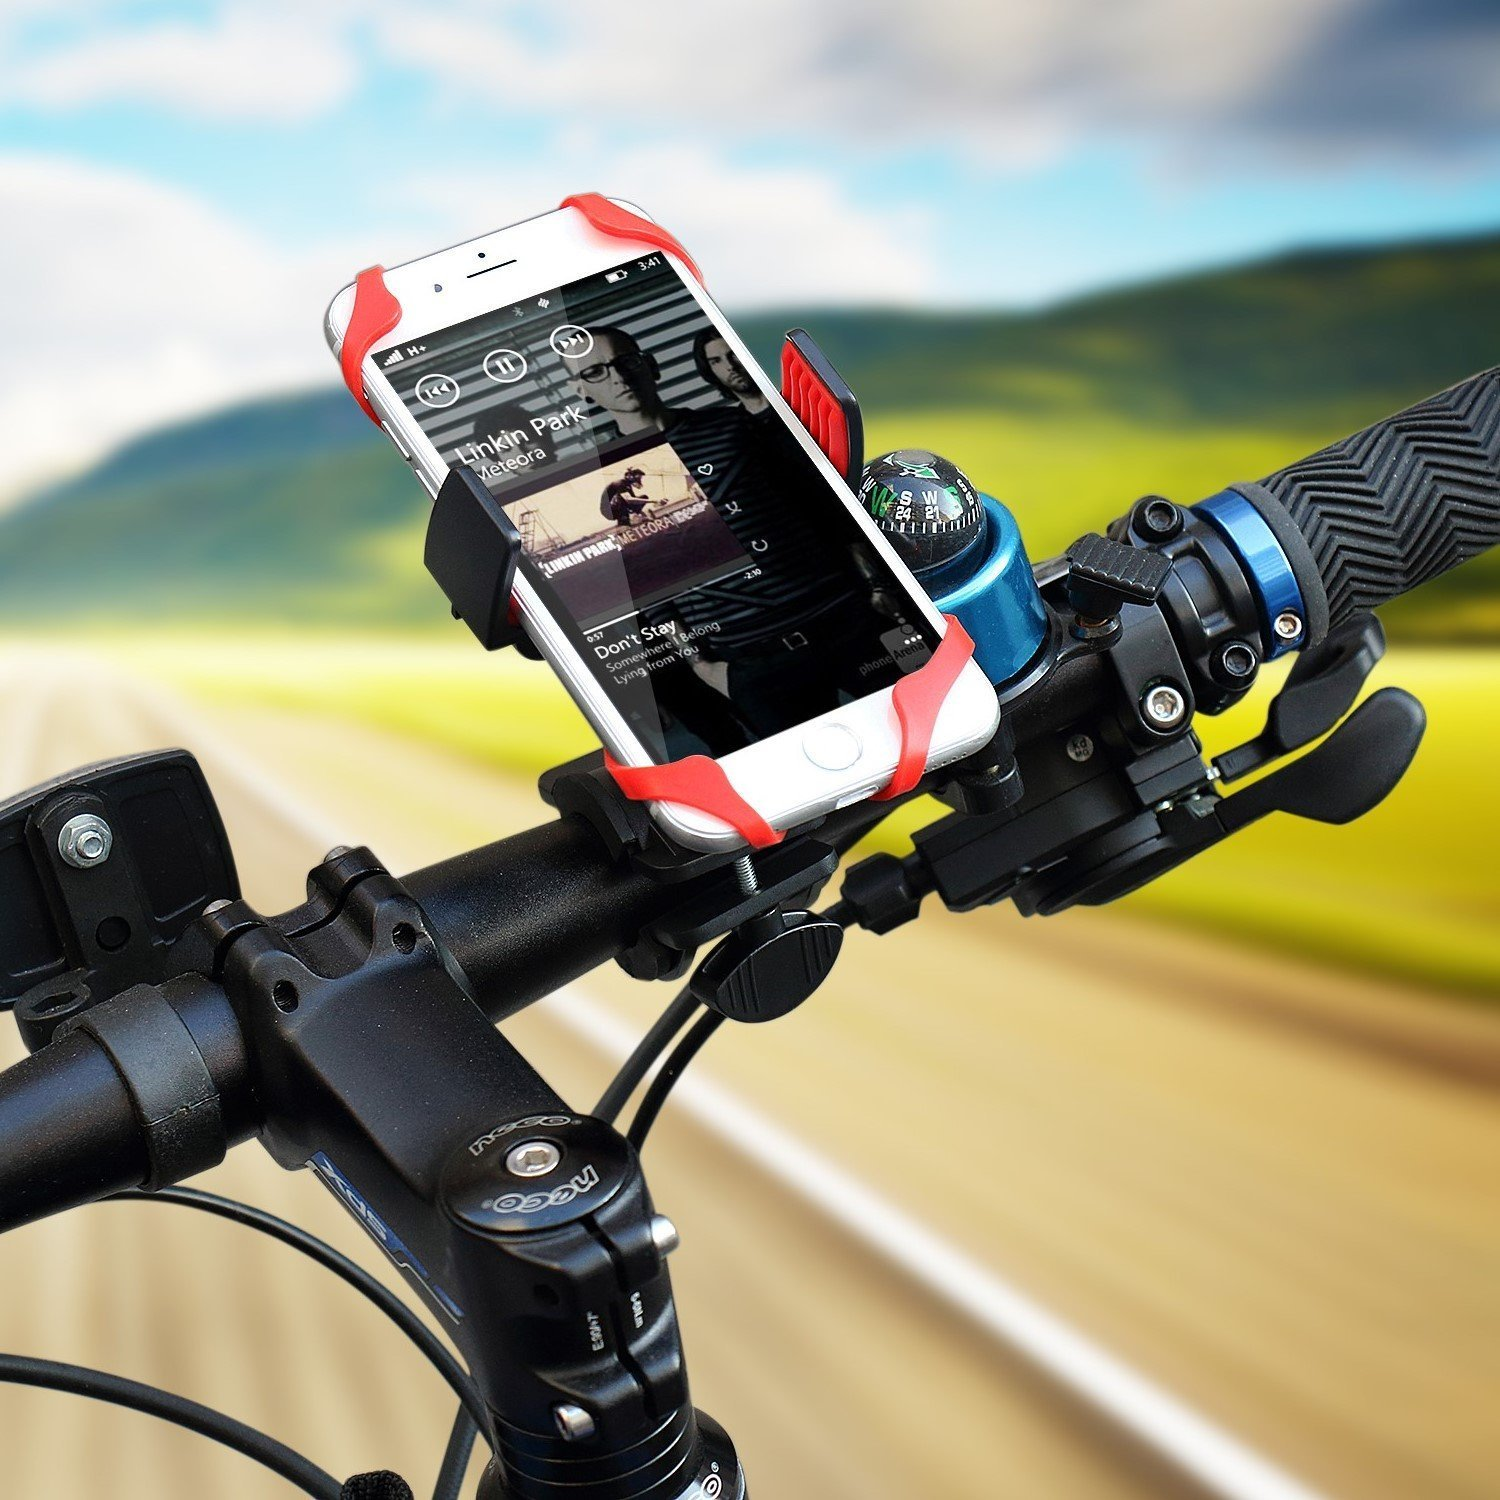 Bike Mount, HamFire Universal Smartphone Bicycle Handlebar & Motorcycle Holder Cradle for iPhone 6s /6 /5s /5c/5,Samsung Galaxy S5/S4/S3, Google Nexus 5/4, LG G3, HTC and GPS Device